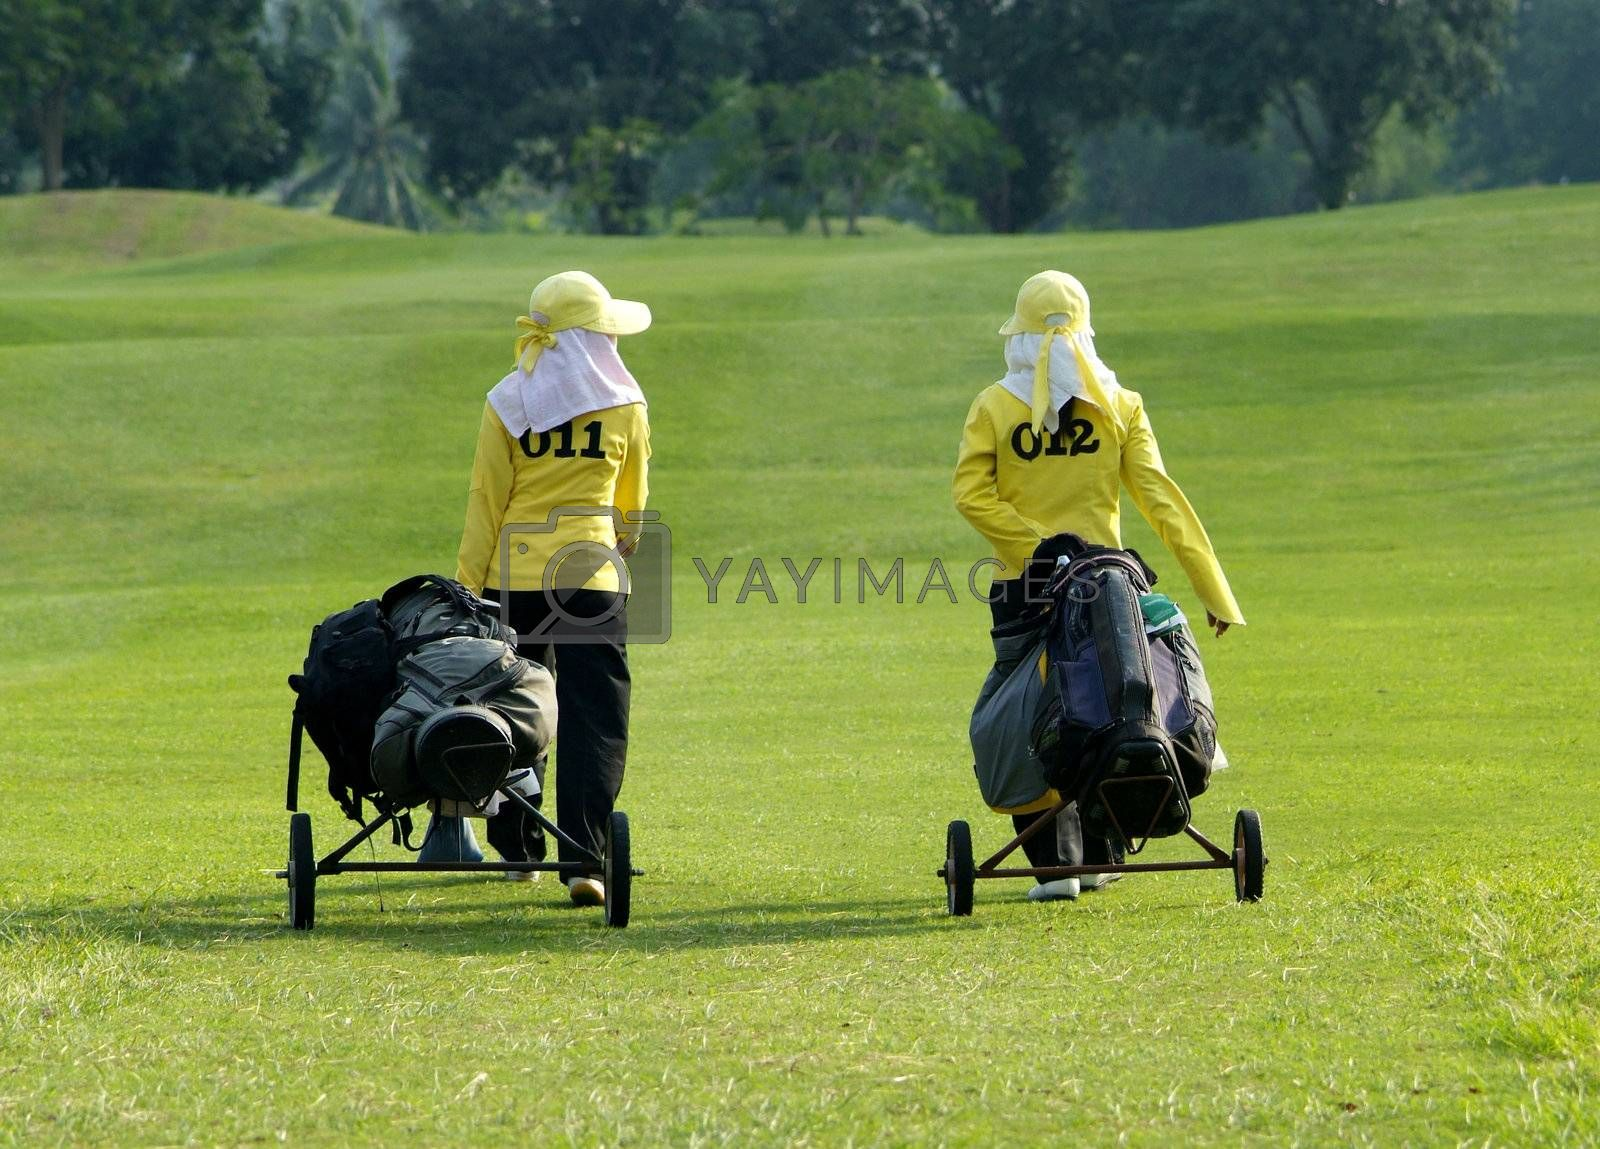 Two caddies on a golf course by epixx